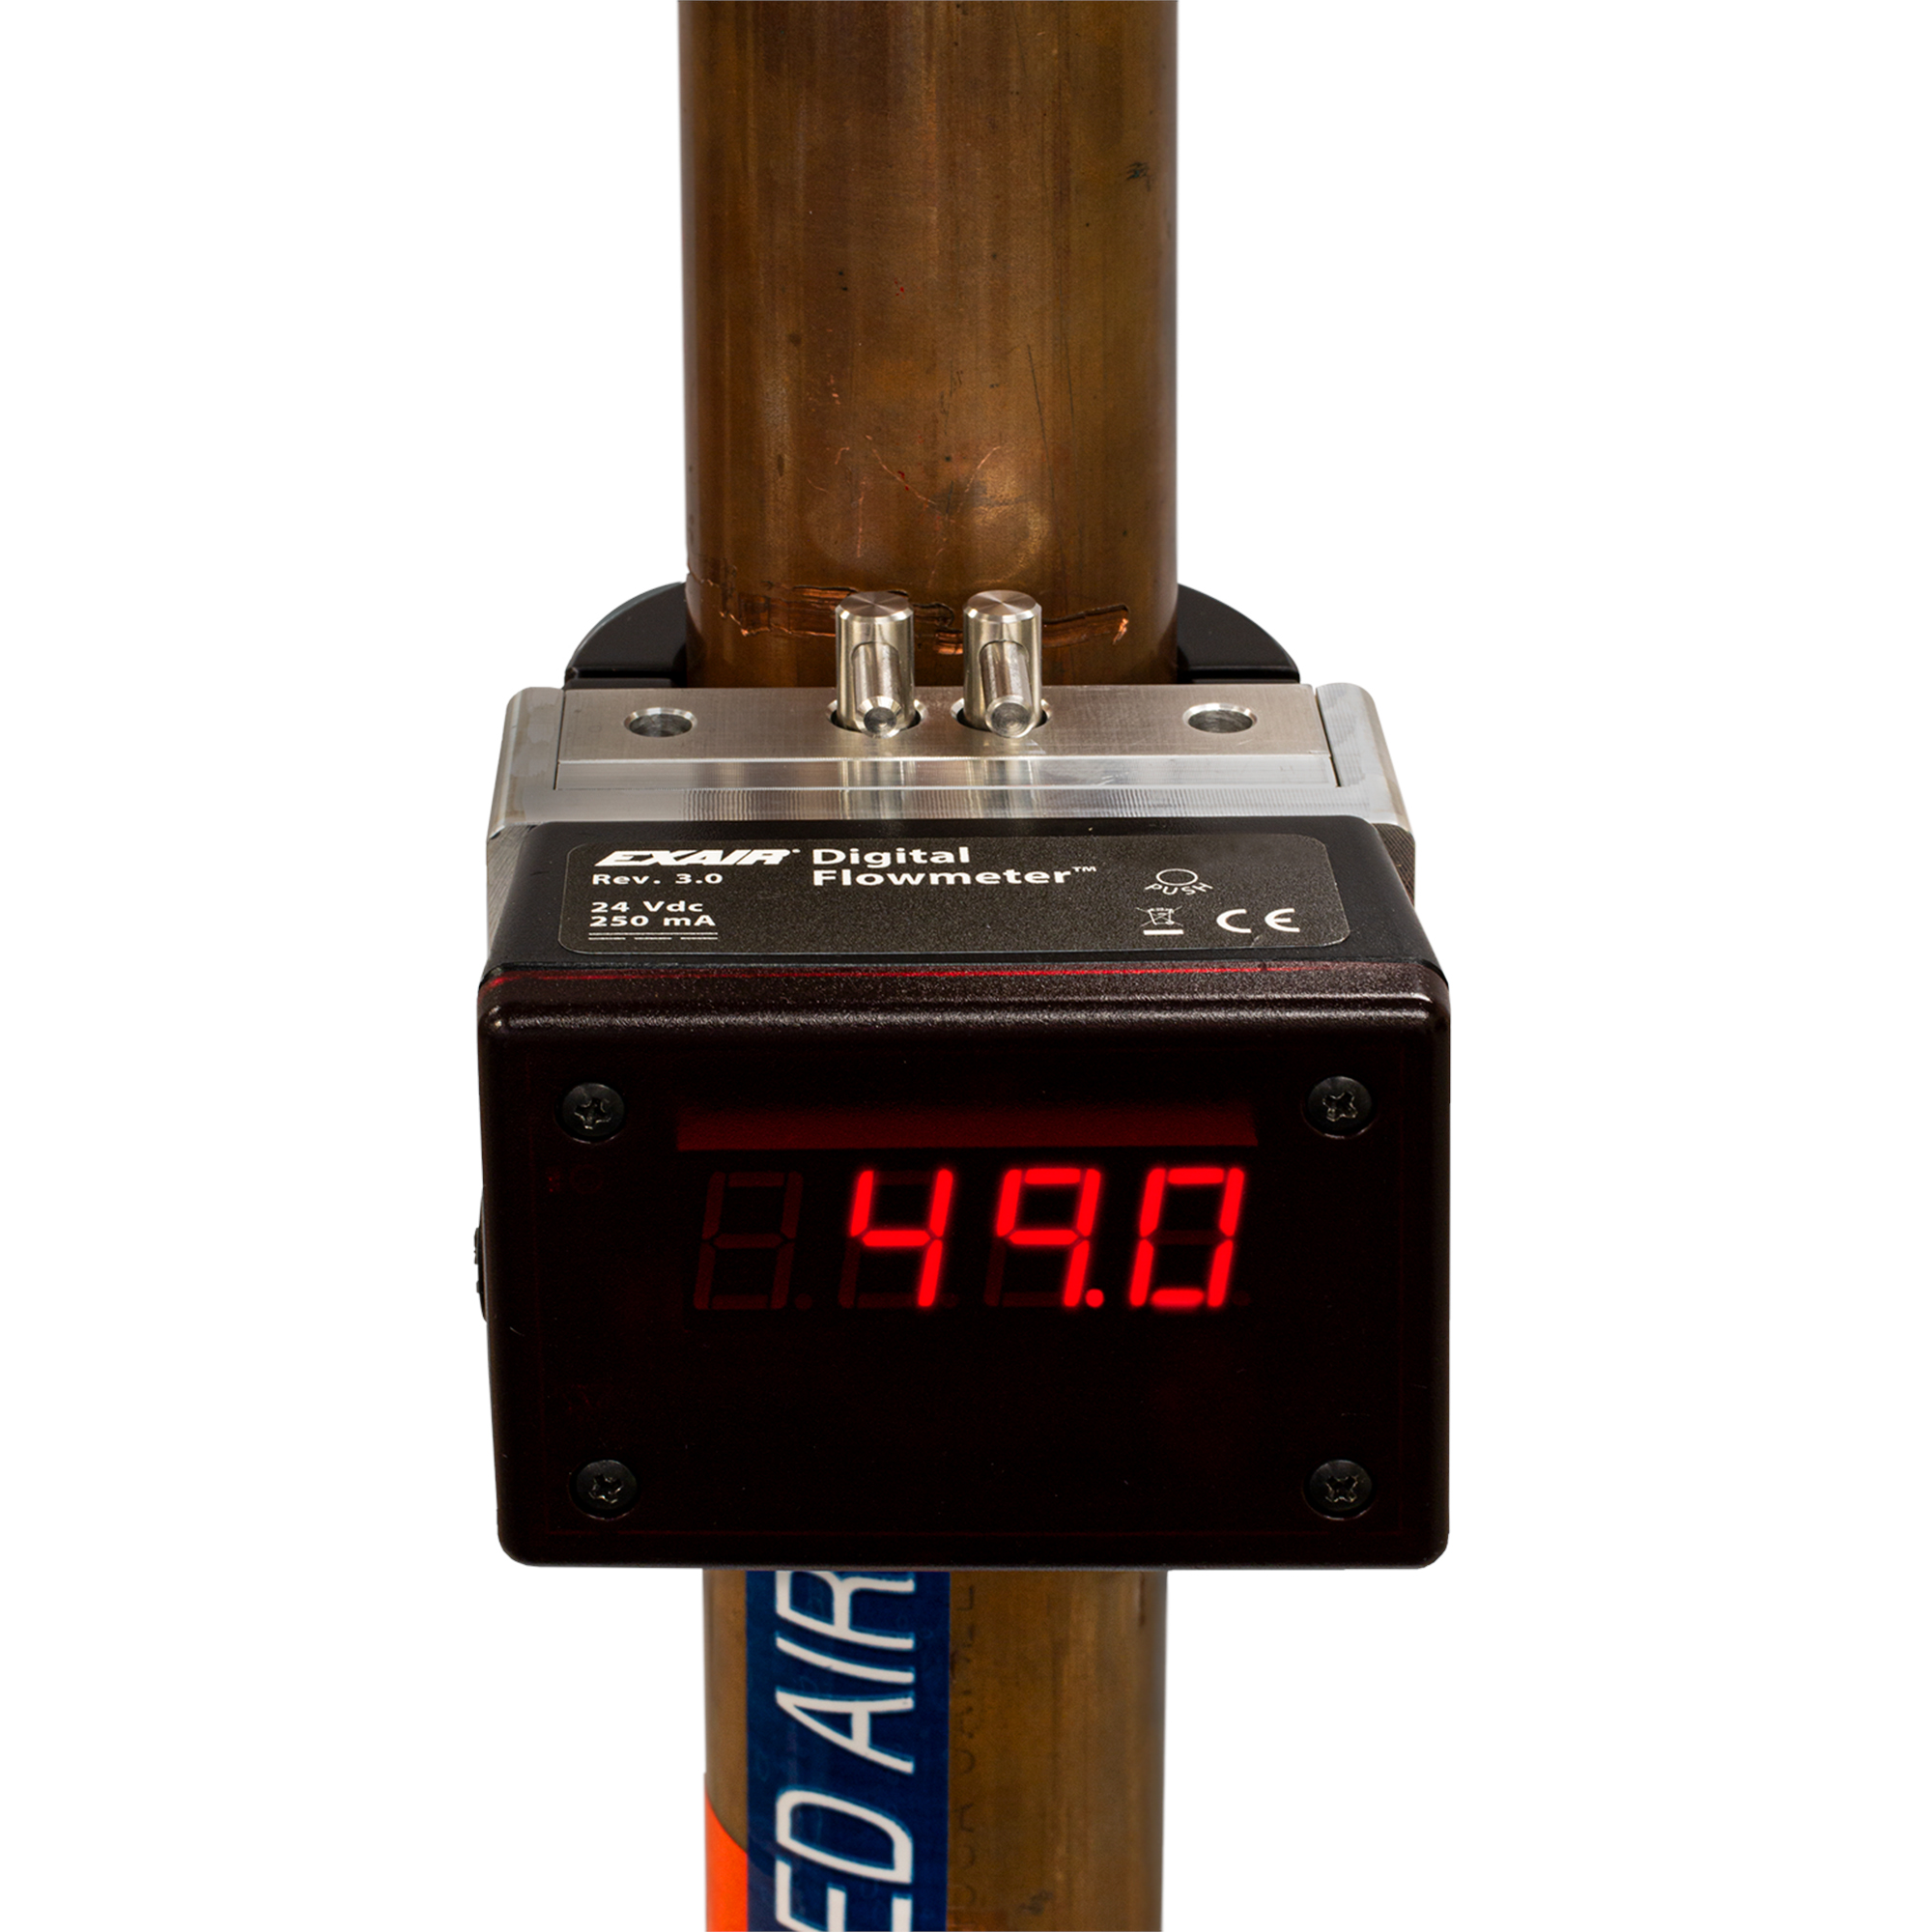 The Hot Tap Digital Flowmeter with Wireless Capability allows for the gathering of air use data in order to better understand how much compressed air is actually being used.